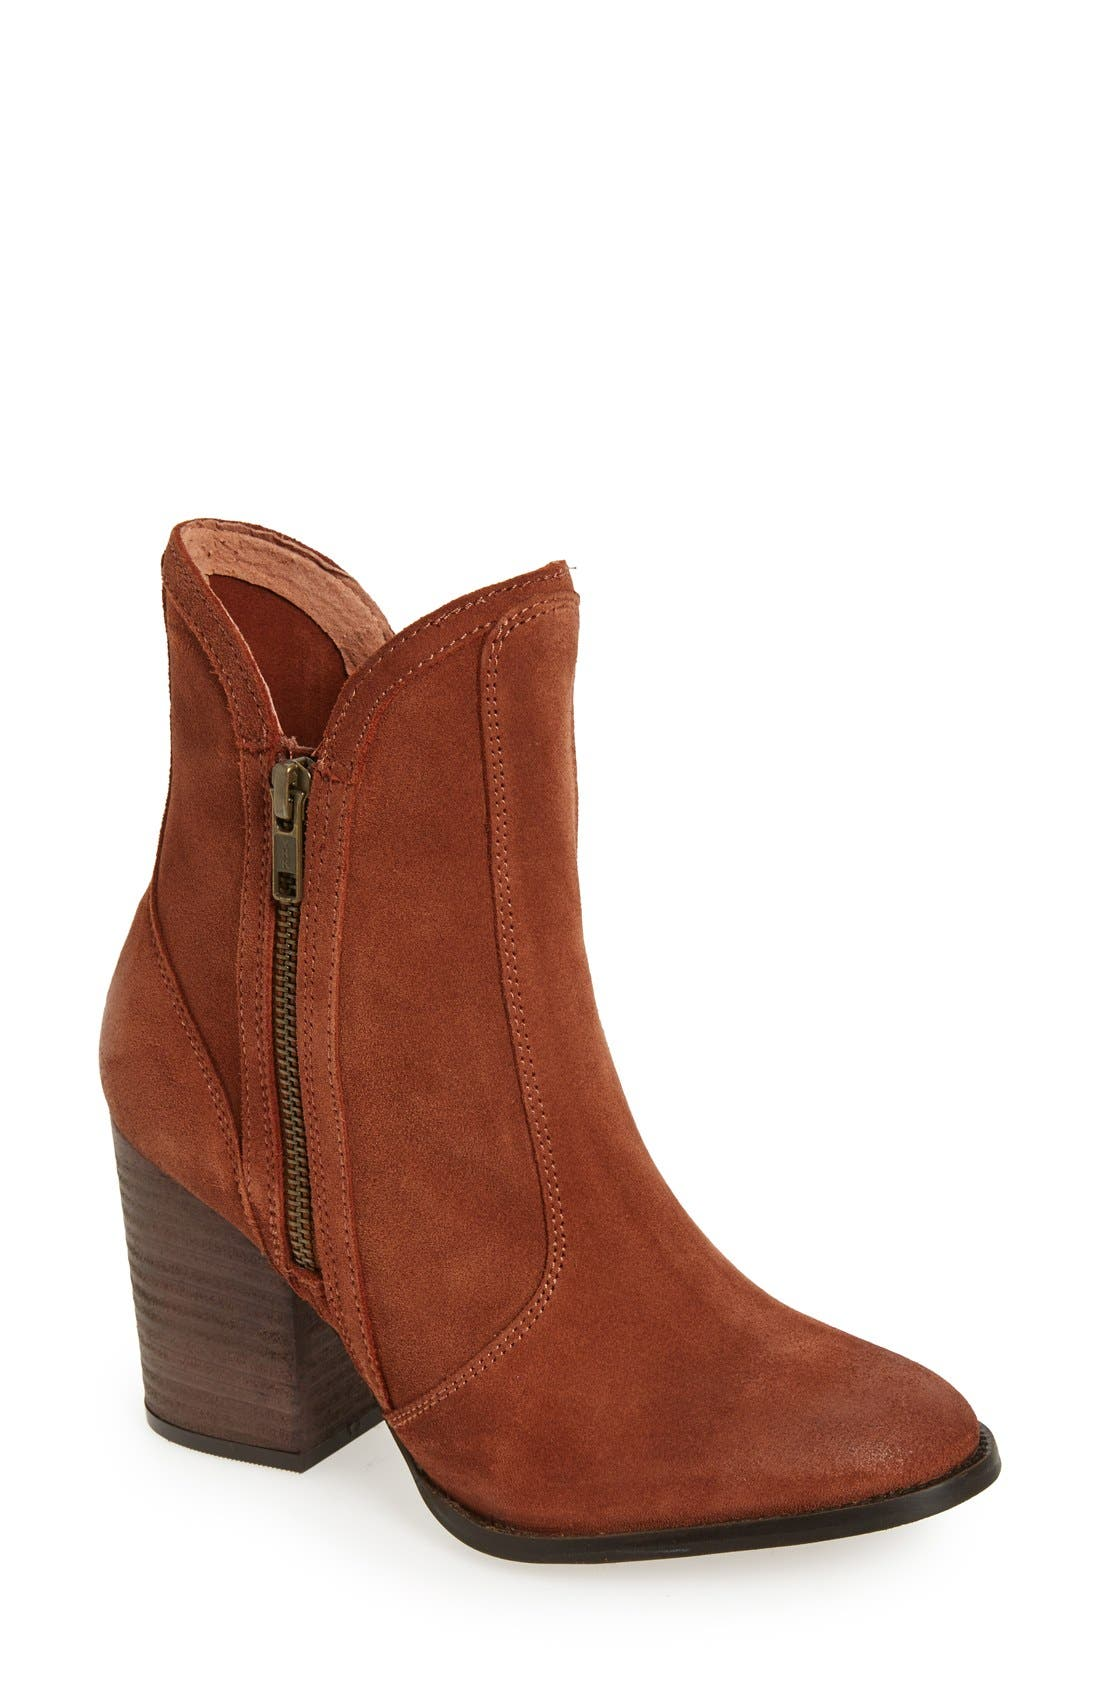 Alternate Image 1 Selected - Seychelles Lori Block Heel Western Bootie (Women)